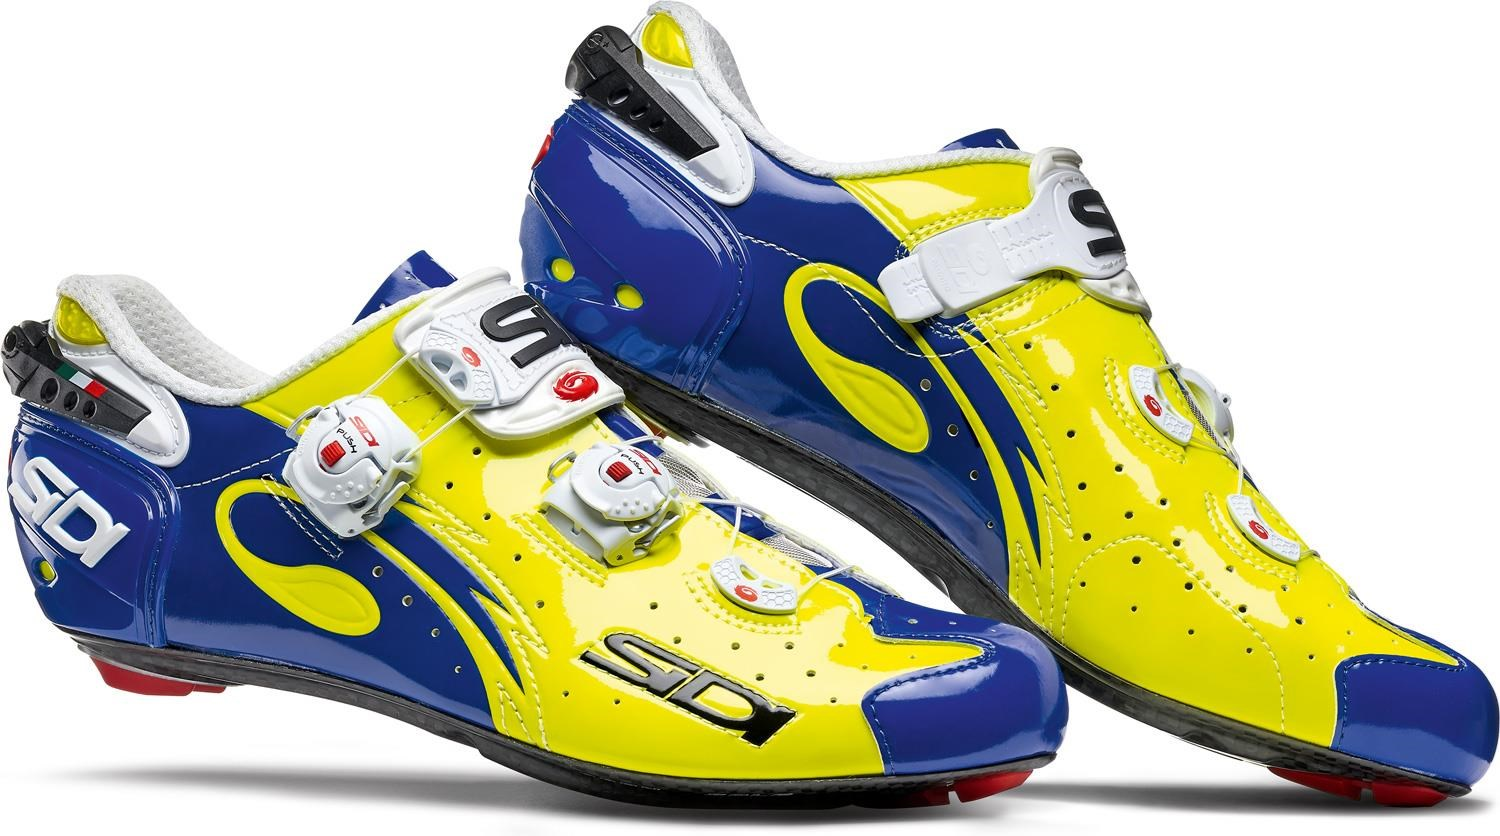 Sidi Wire Carbon Vernice Cycling Shoes Yellow Fluro Blue